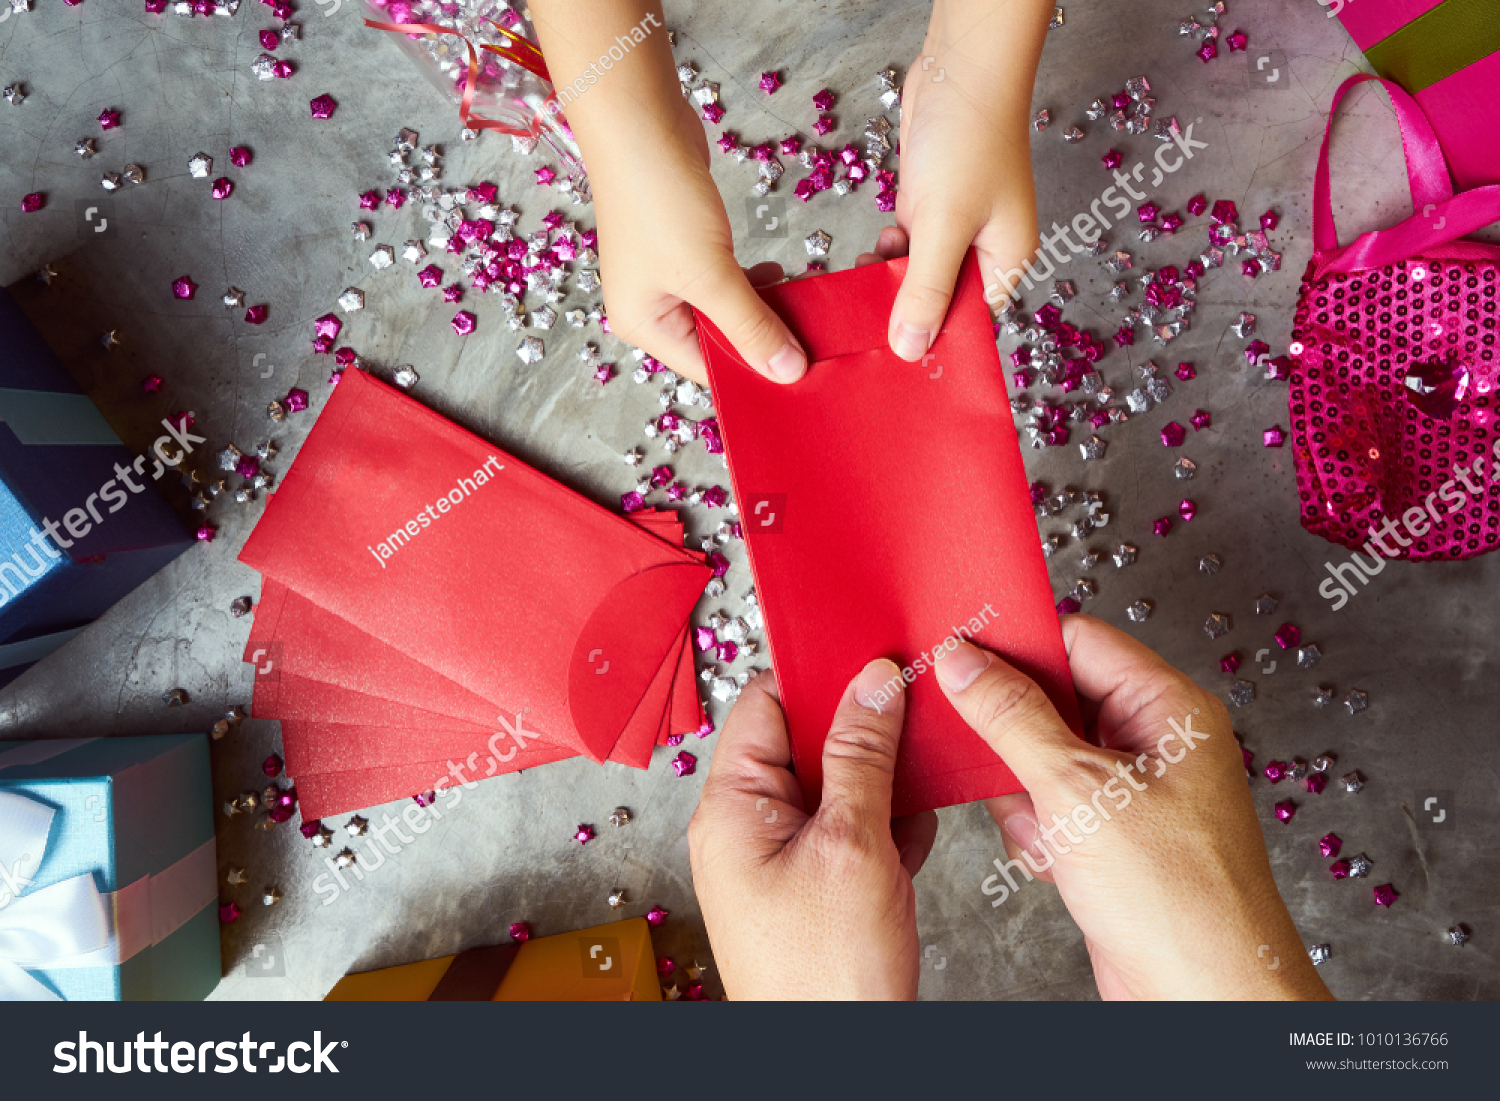 Close up hands of parent giving a red envelope or money red packet to child  .  Chinese new year and Lunar new year festival concept background . Top view . #1010136766